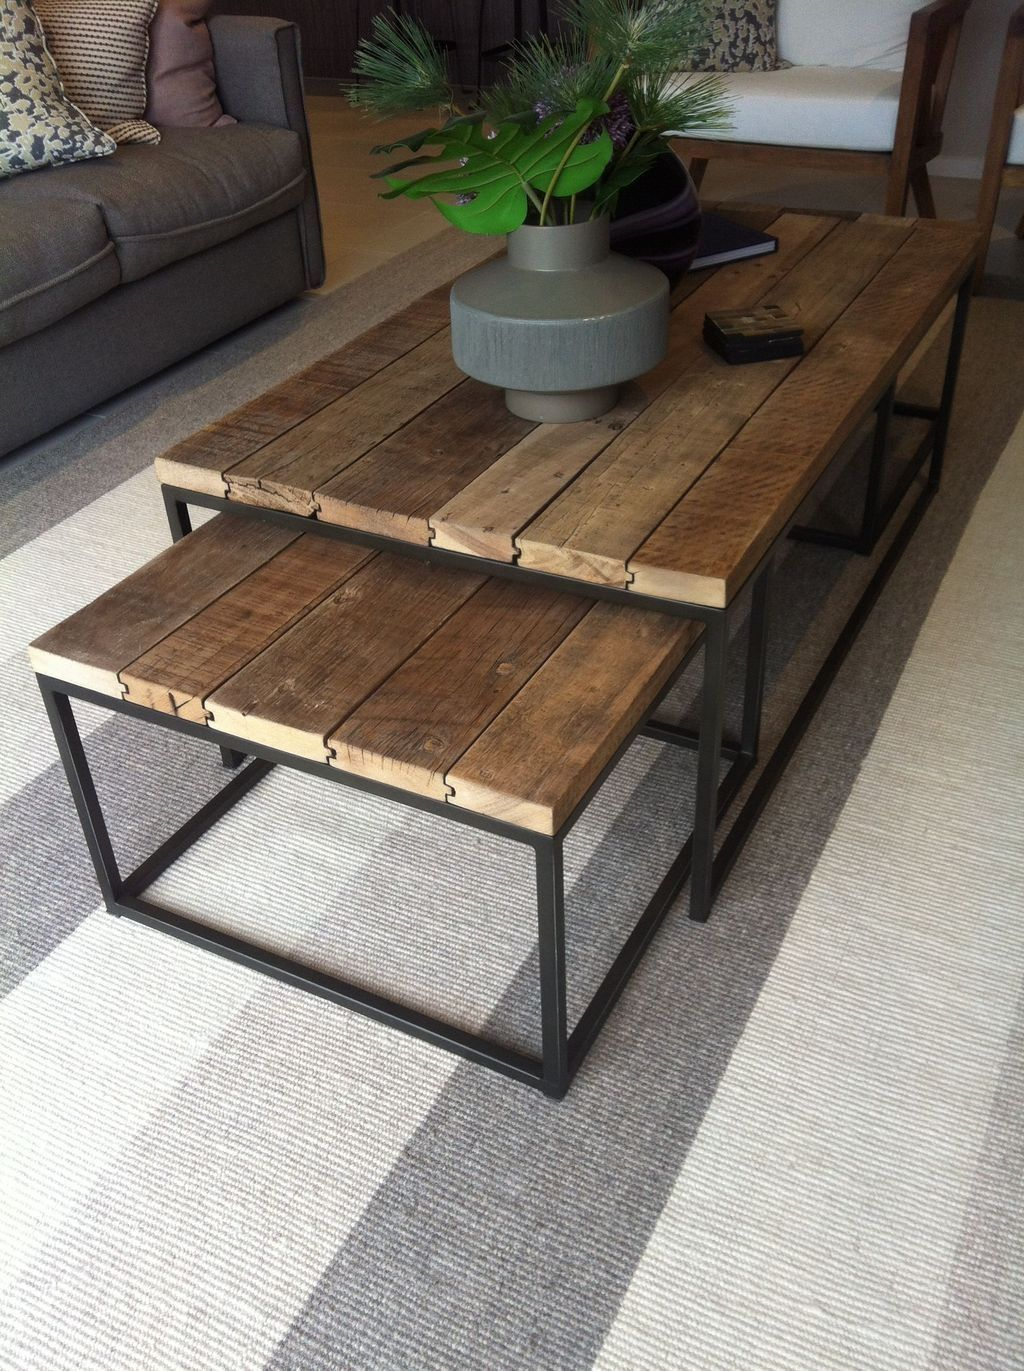 30 Awesome Diy Coffee Table Design Ideas With Cheap Material Coffee Table Coffee Table Design Diy Coffee Table [ 1371 x 1024 Pixel ]